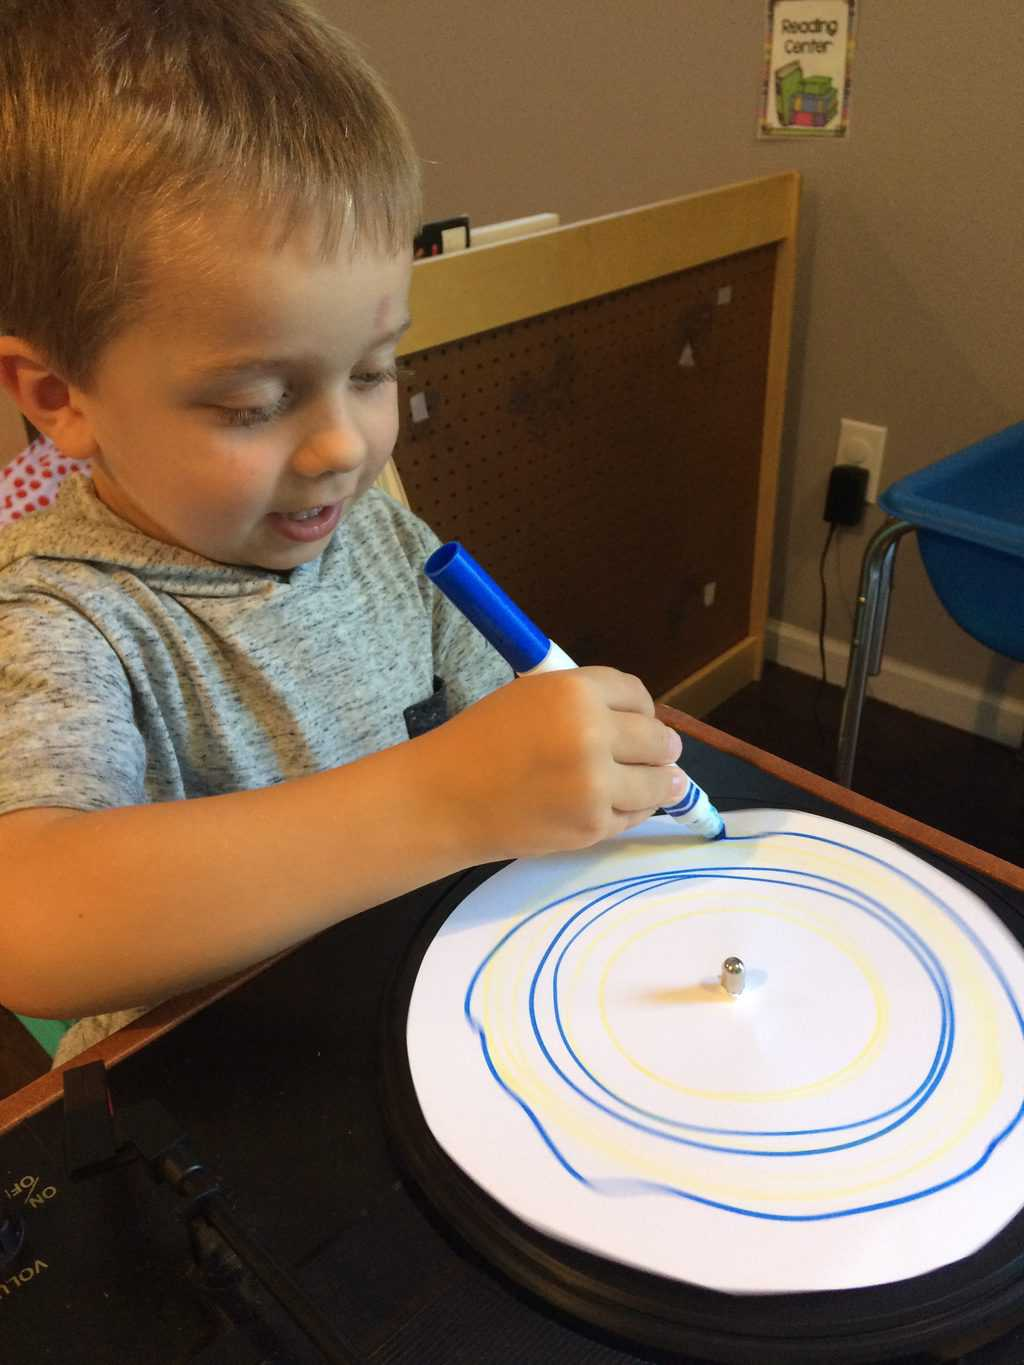 young boy working with record player and marker to make art